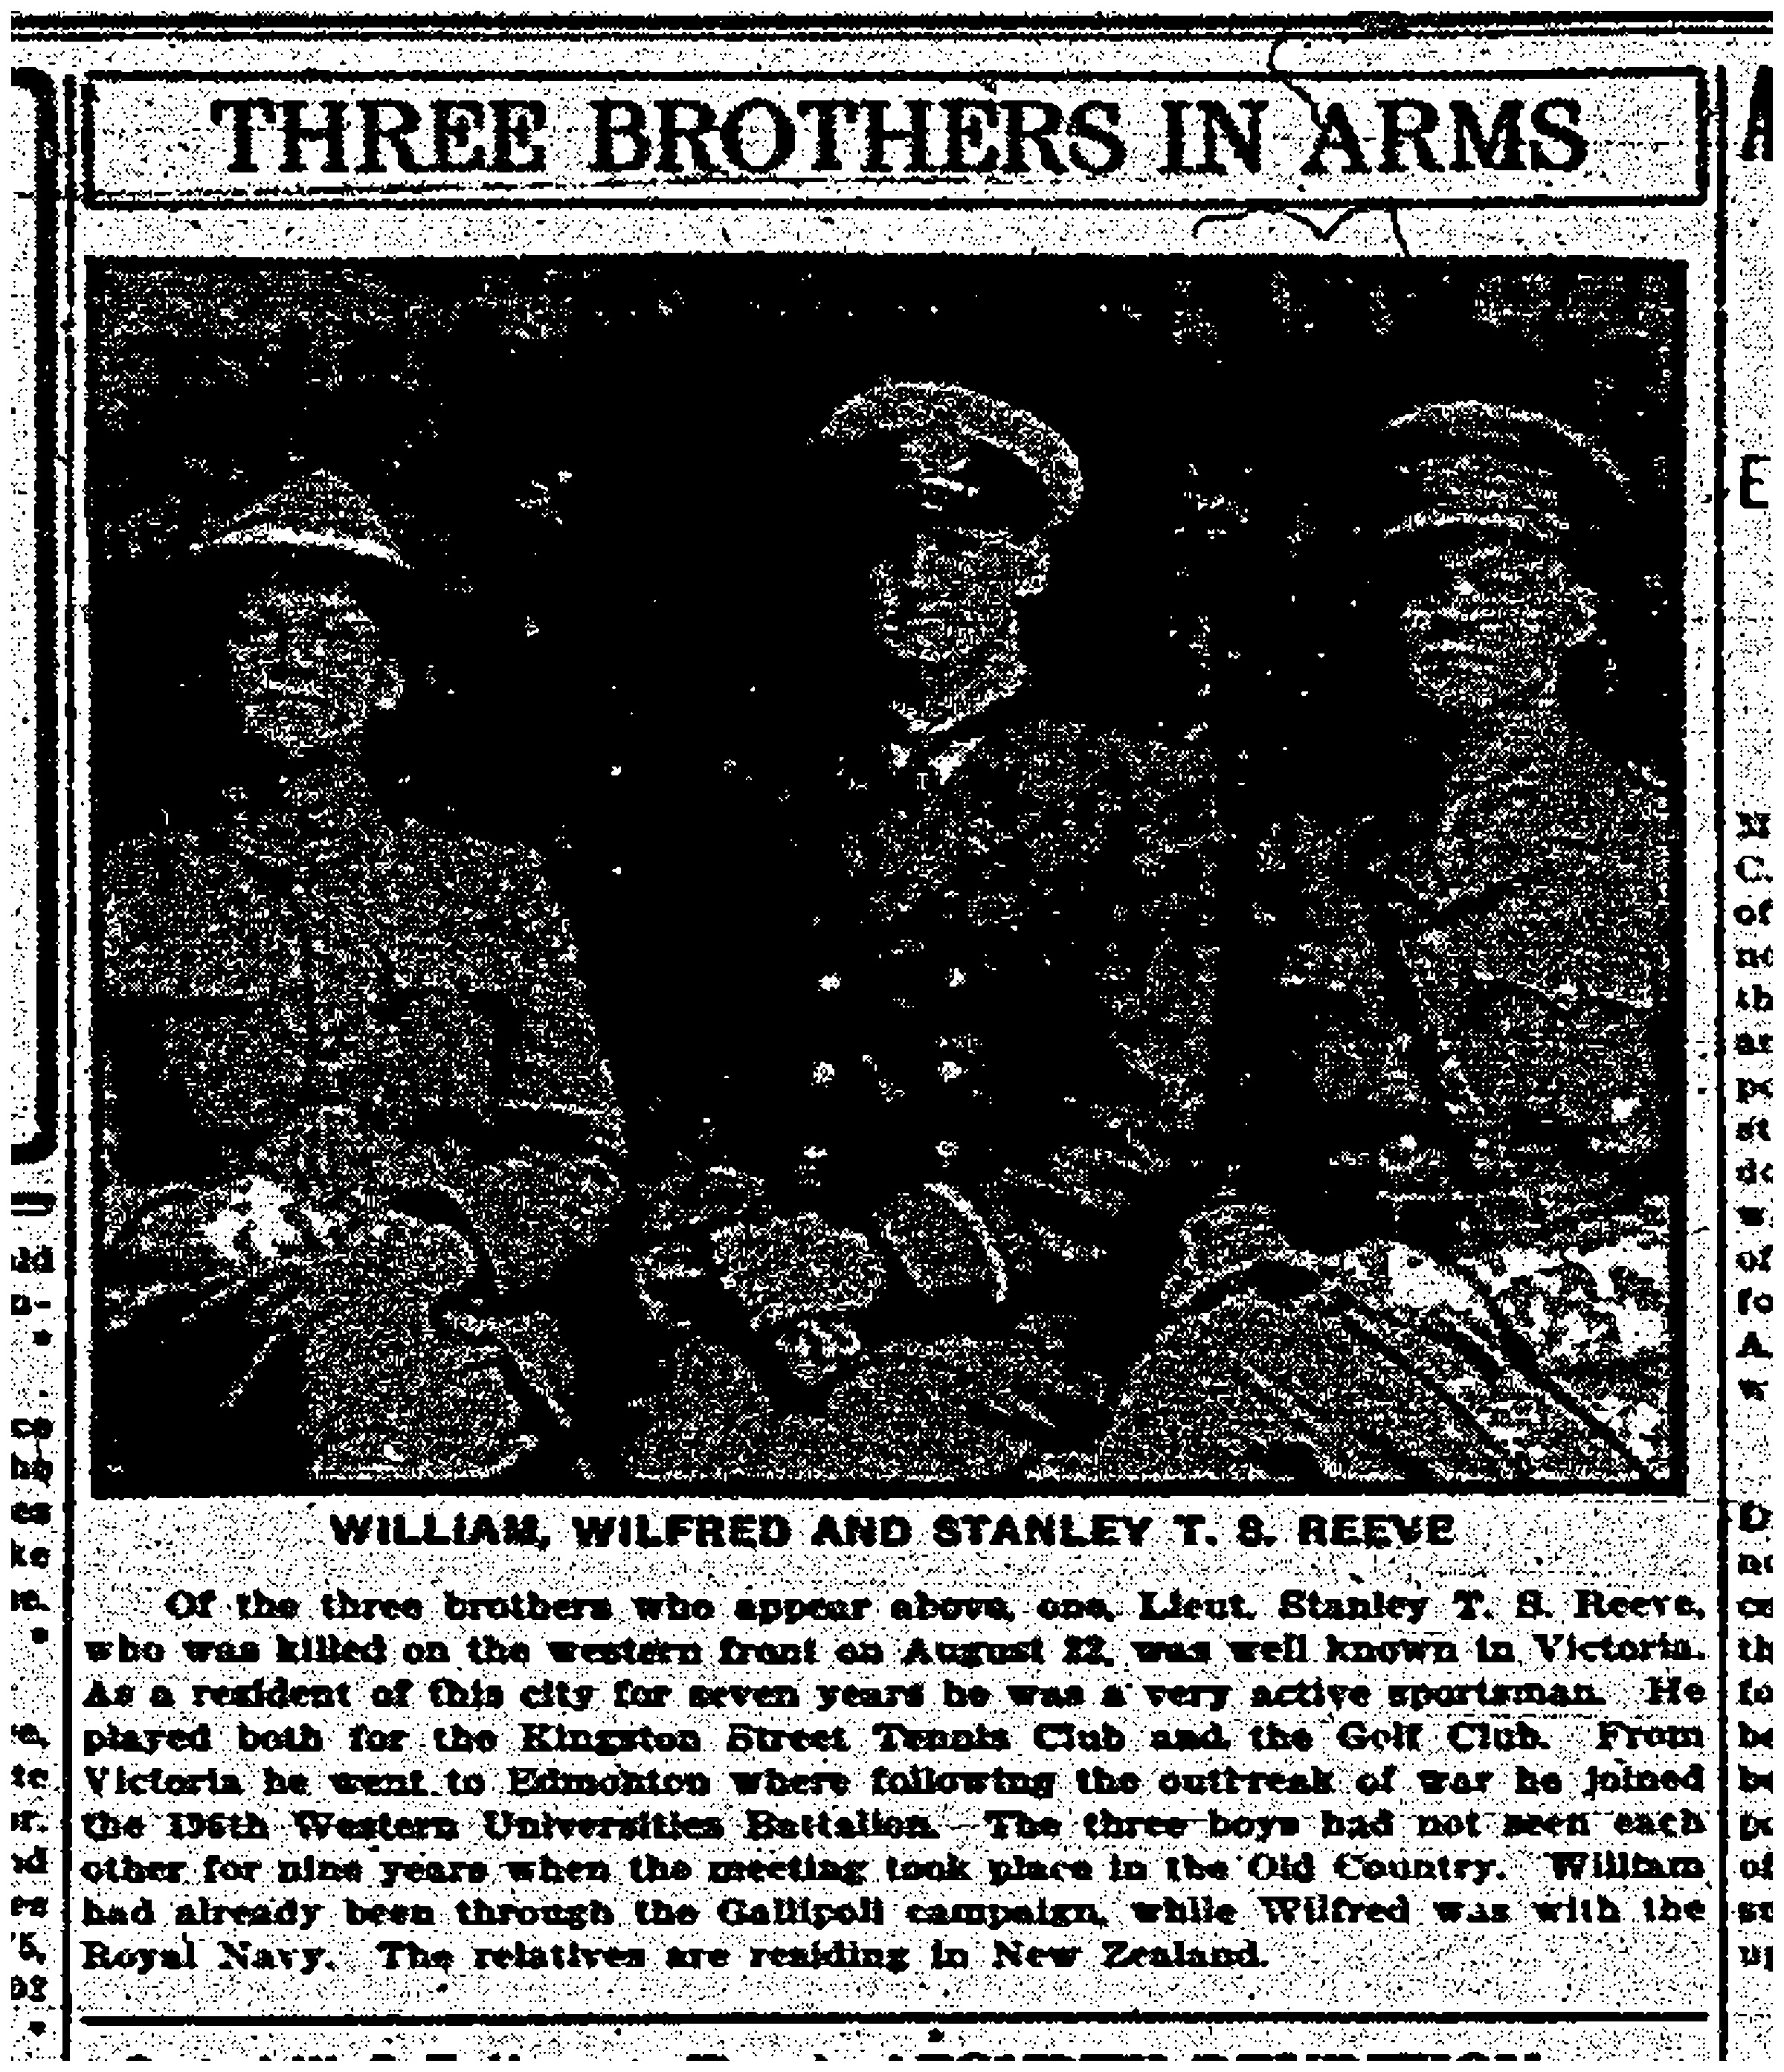 """Three Brothers in Arms: William, Wilfred and Stanley T.S. Reeve"""